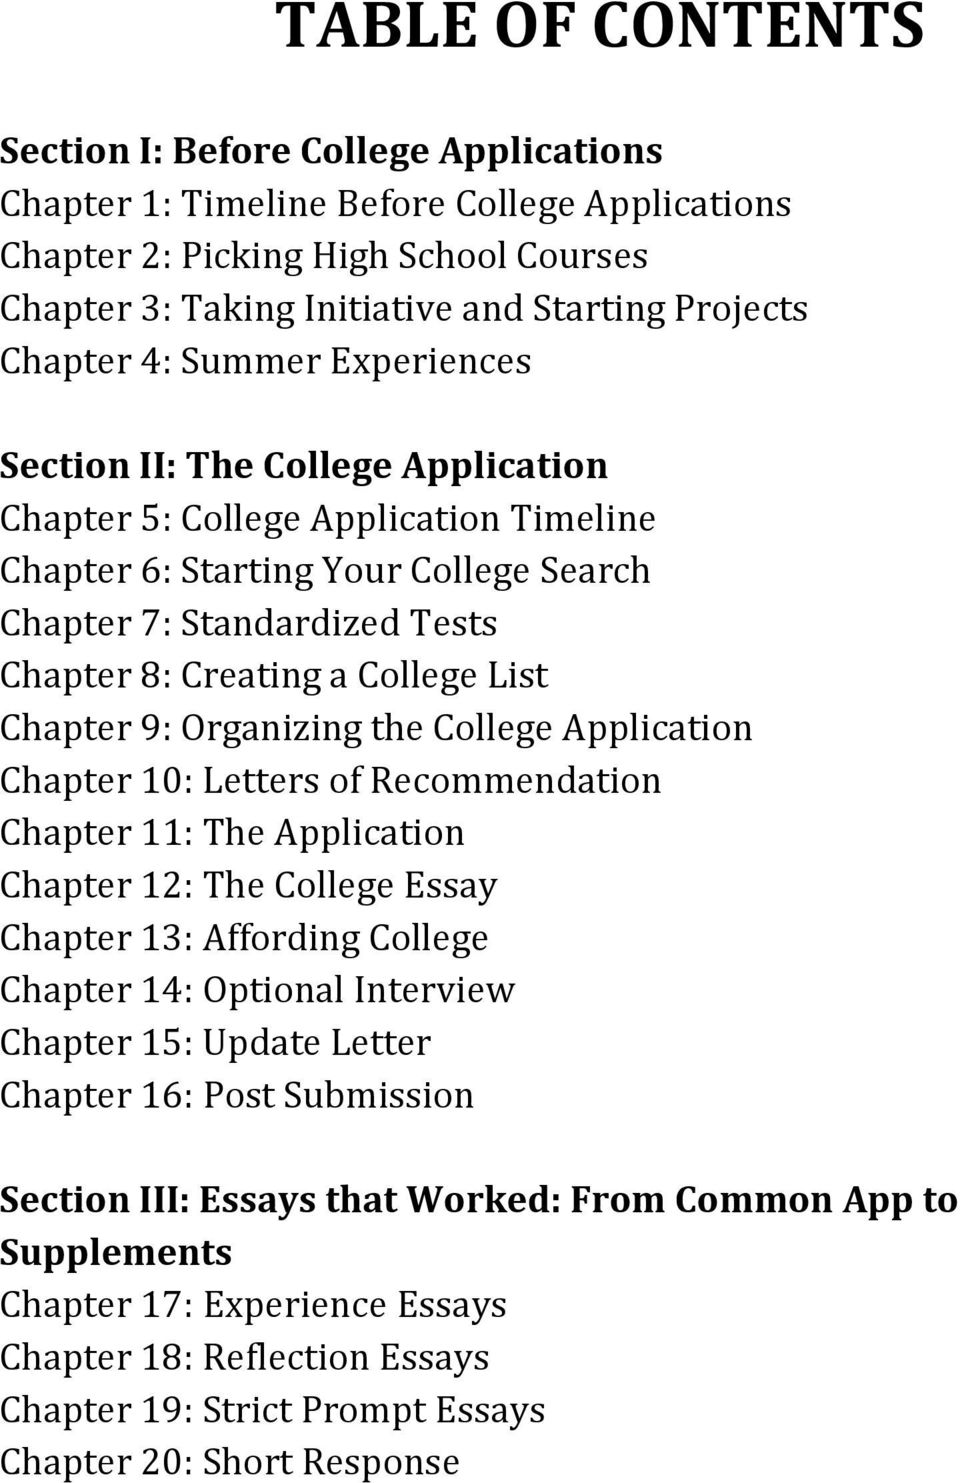 Reflective Writing Assignment Research Paper About Science Top